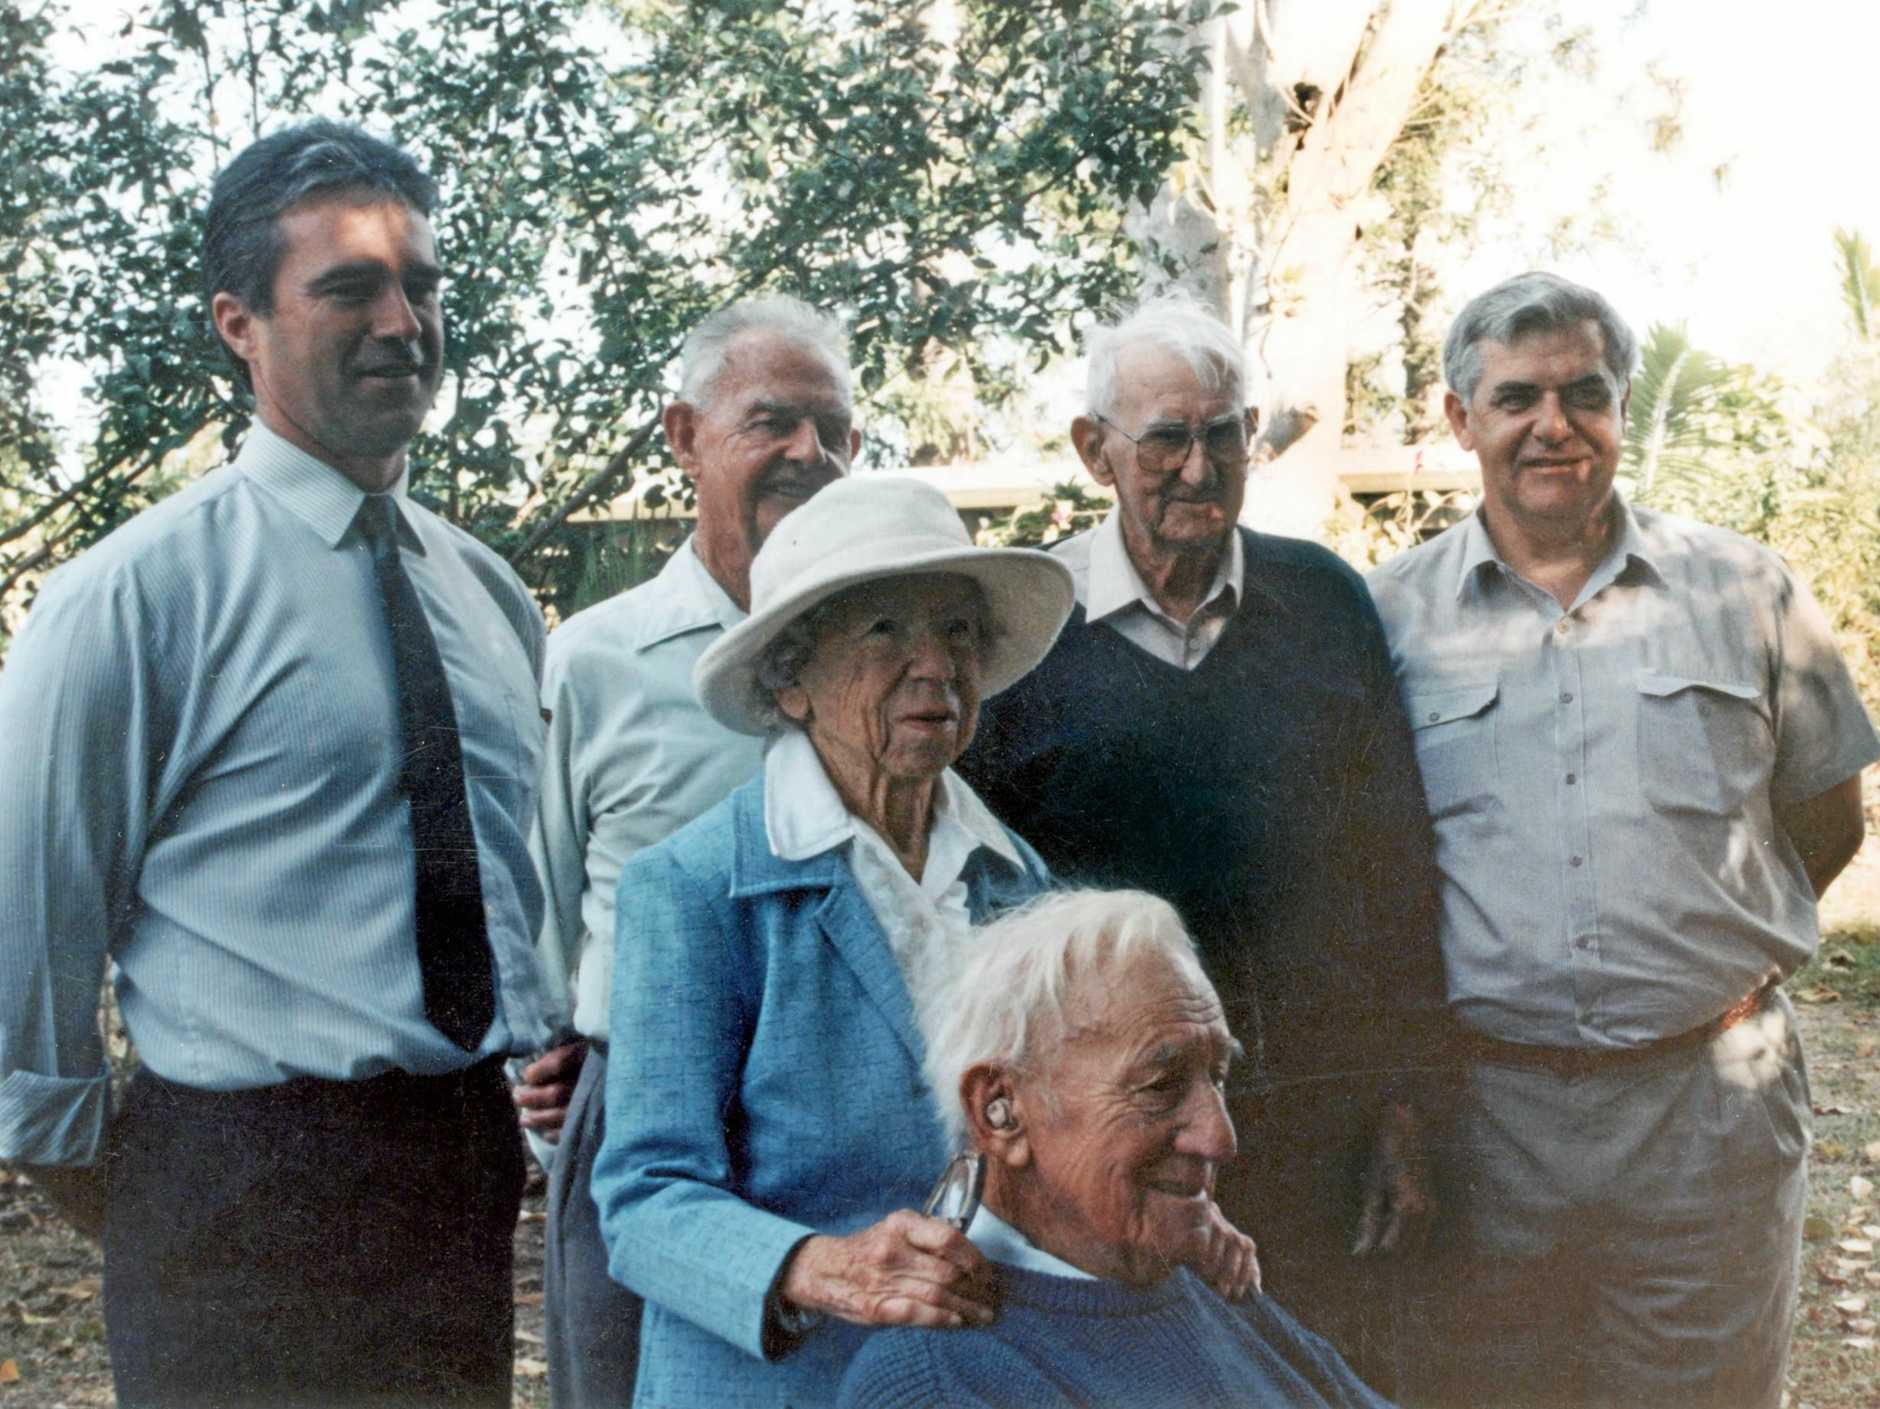 Group of descendants of Sunshine Coast pioneers gathered at Yandina, 1994. Taken in the grounds of ' Koongalba', the Low/Blyth family residence at Yandina. Pictured (back row) L to R: Frank Carroll, Fred Fink, Jack Ferris and John Low.  Foreground: Sybil Vise and Rollo Petrie. .Please note: These images are supplied for use only in connection with the Backward Glance series (both print and online). They are not to be saved or used for other purposes.